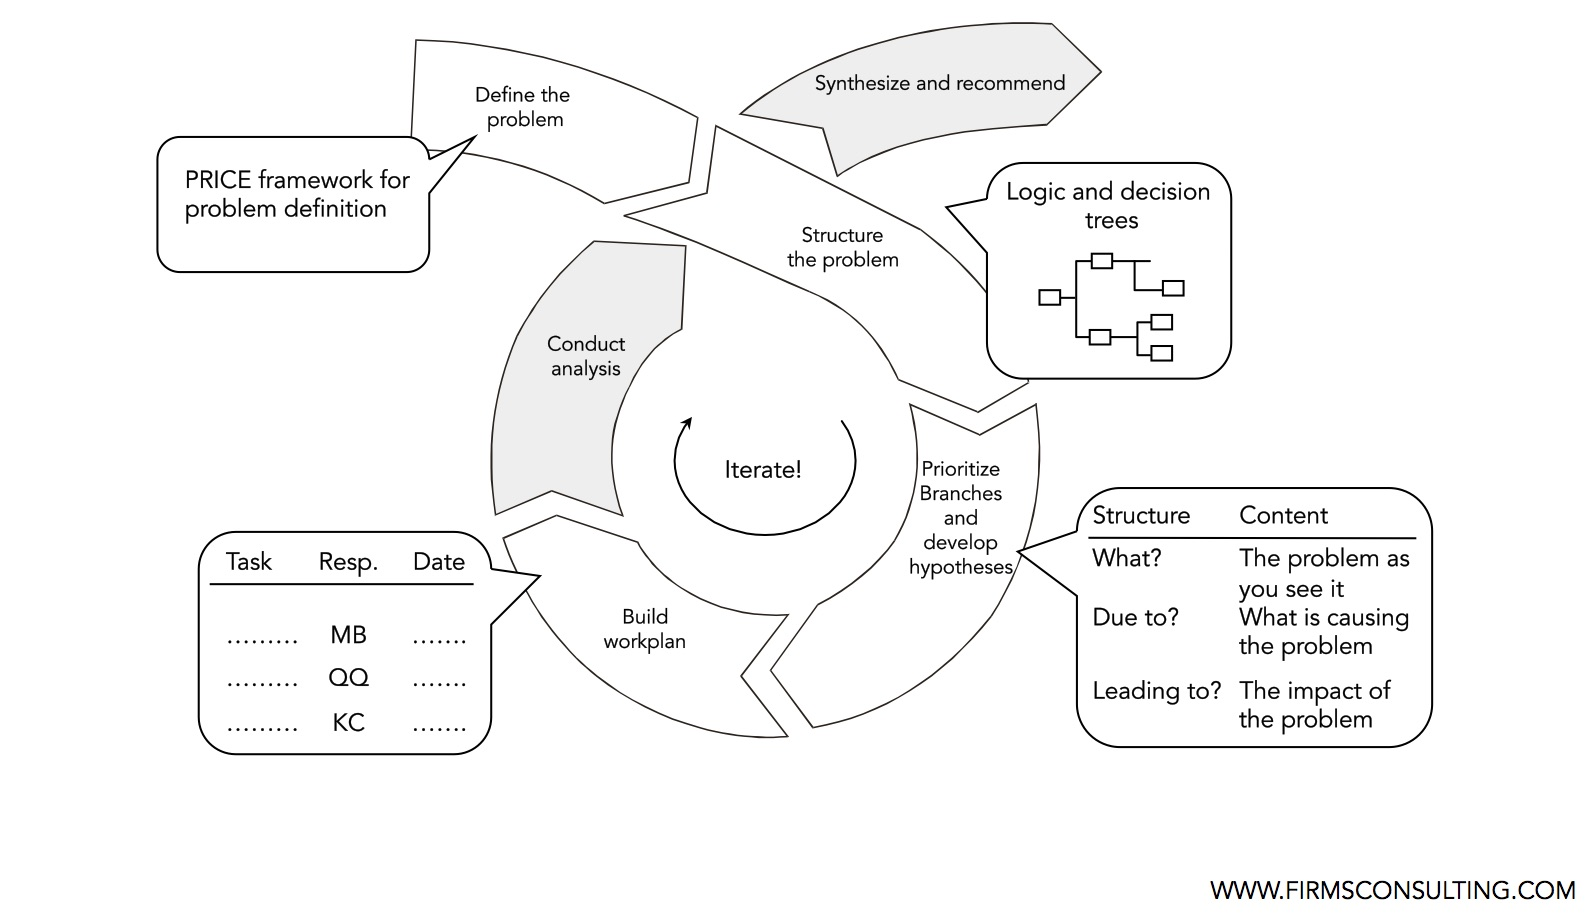 hypotheses firmsconsulting strategy consulting decision tree